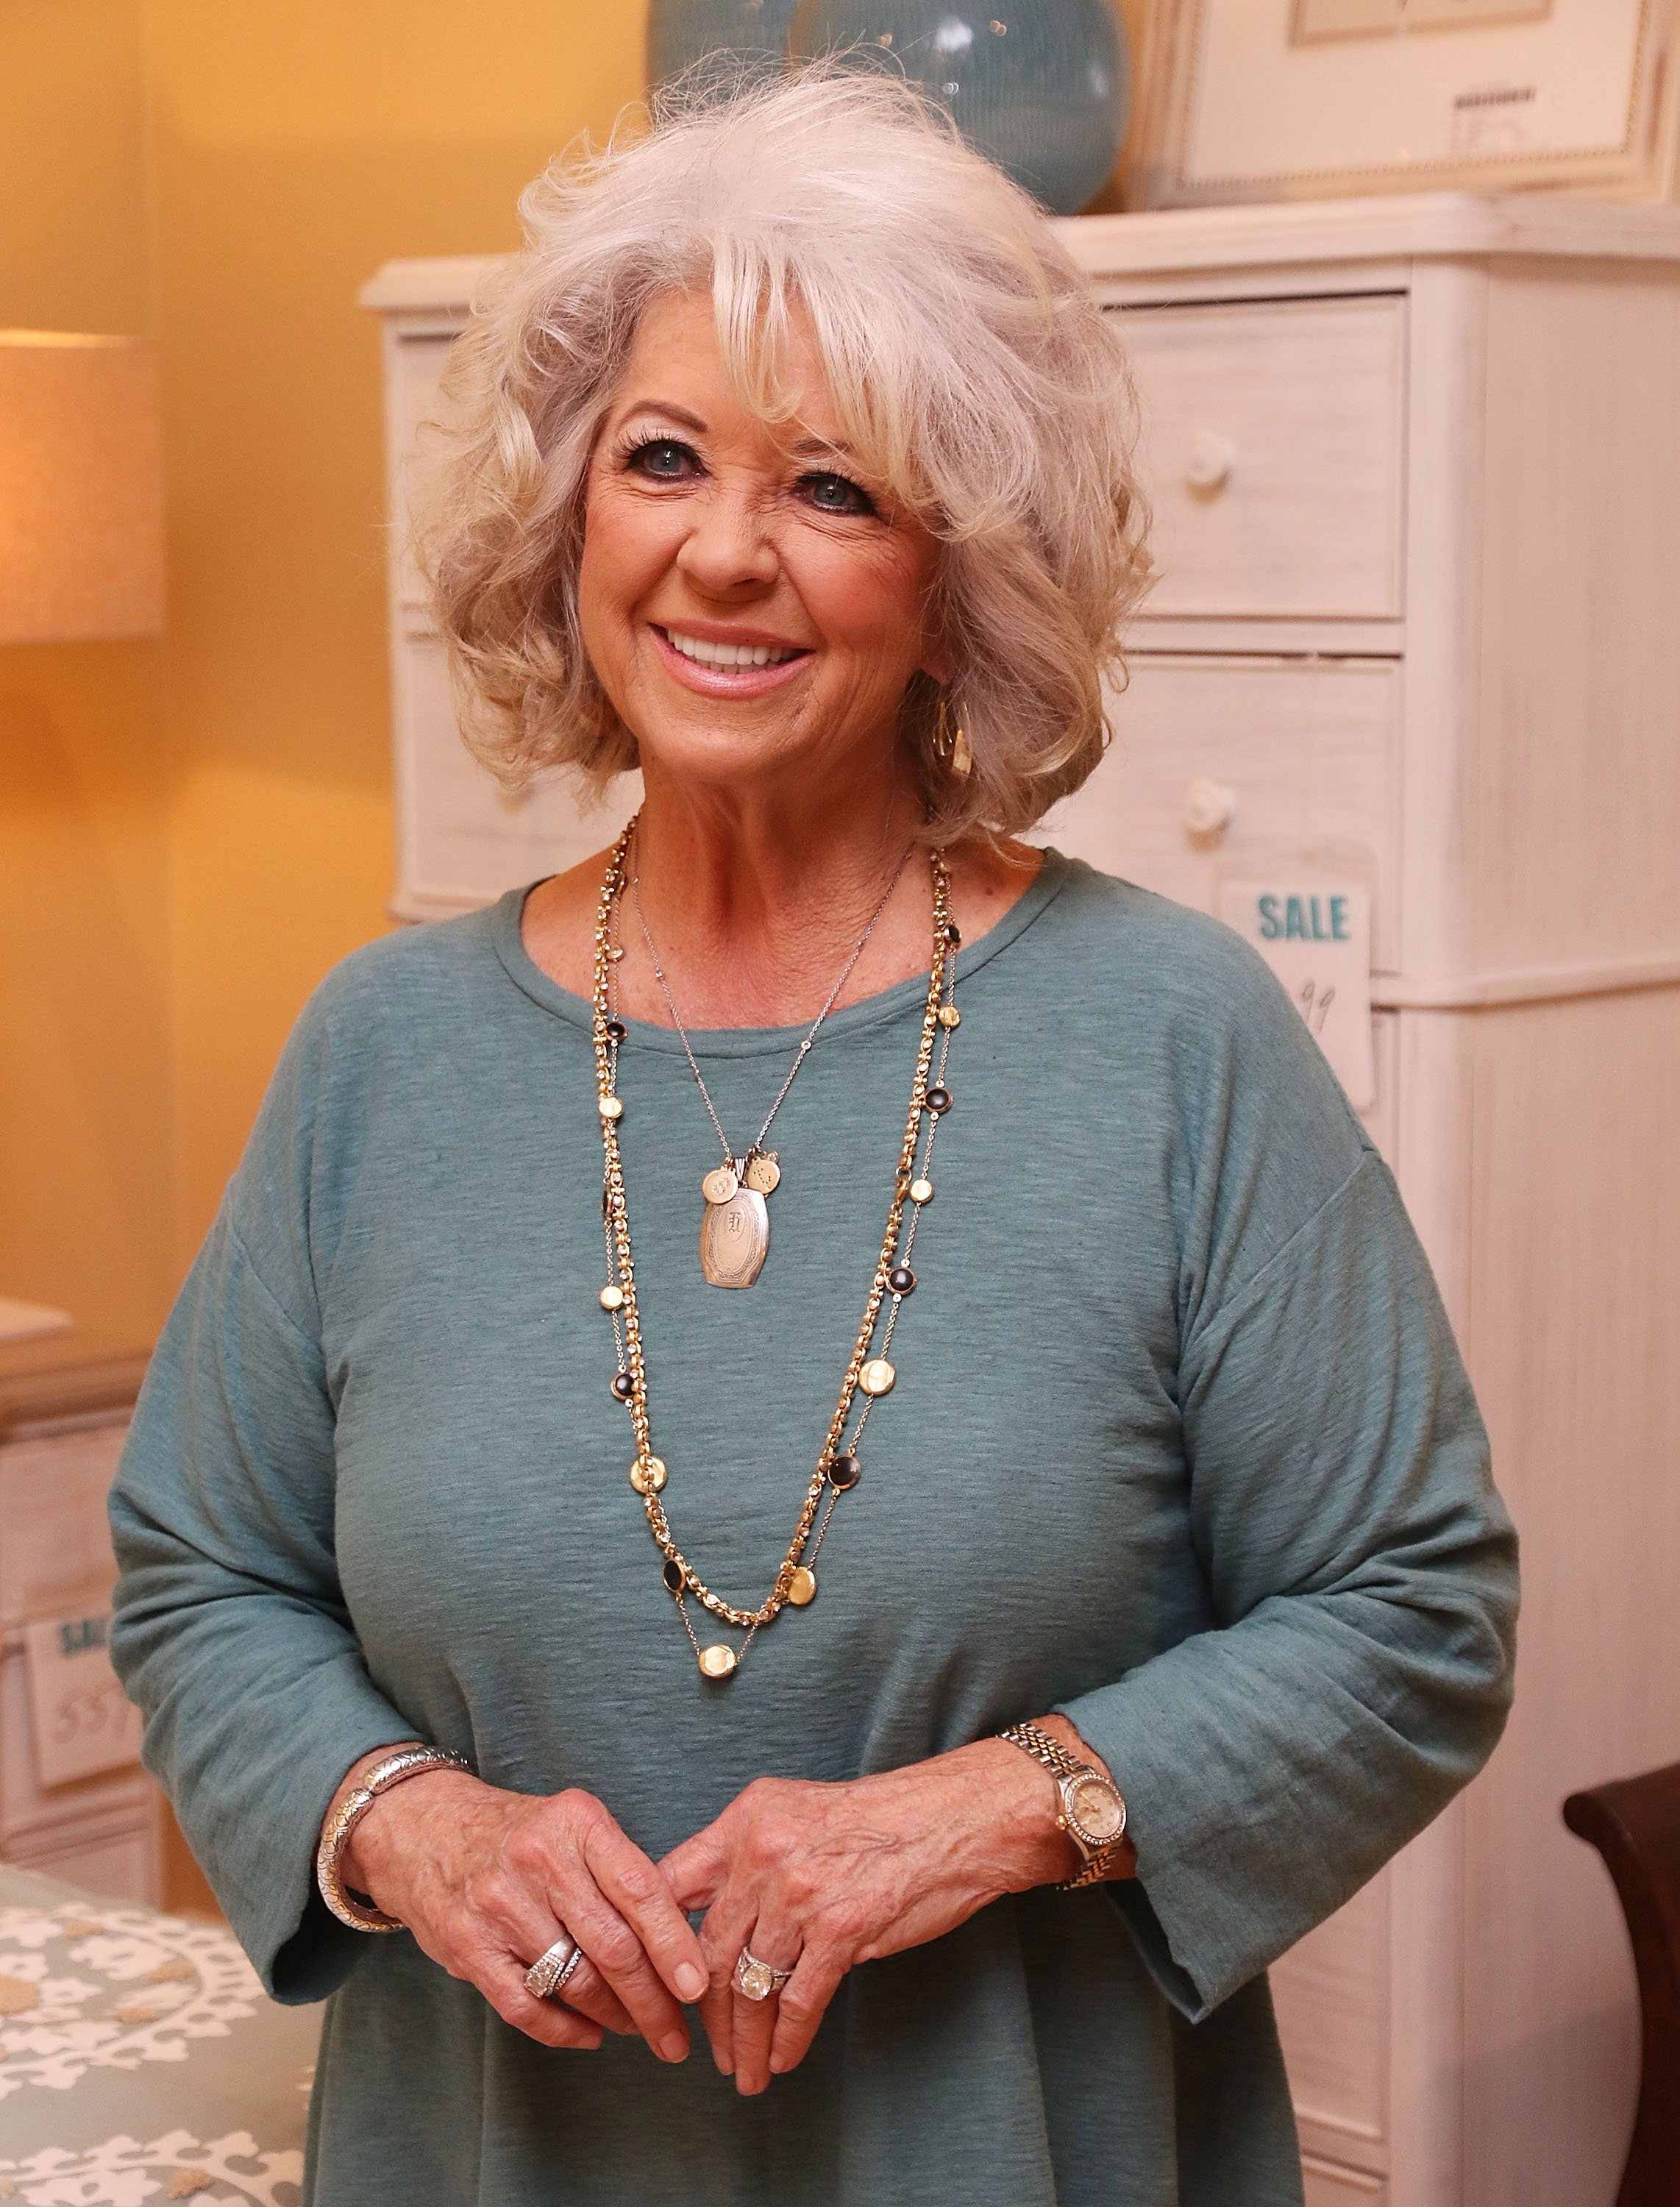 Paula Deen signing copies of her book during 'Cuts the Fat' Book Tour on January 30, 2016 in Boca Raton, Florida | Photo: Getty Images